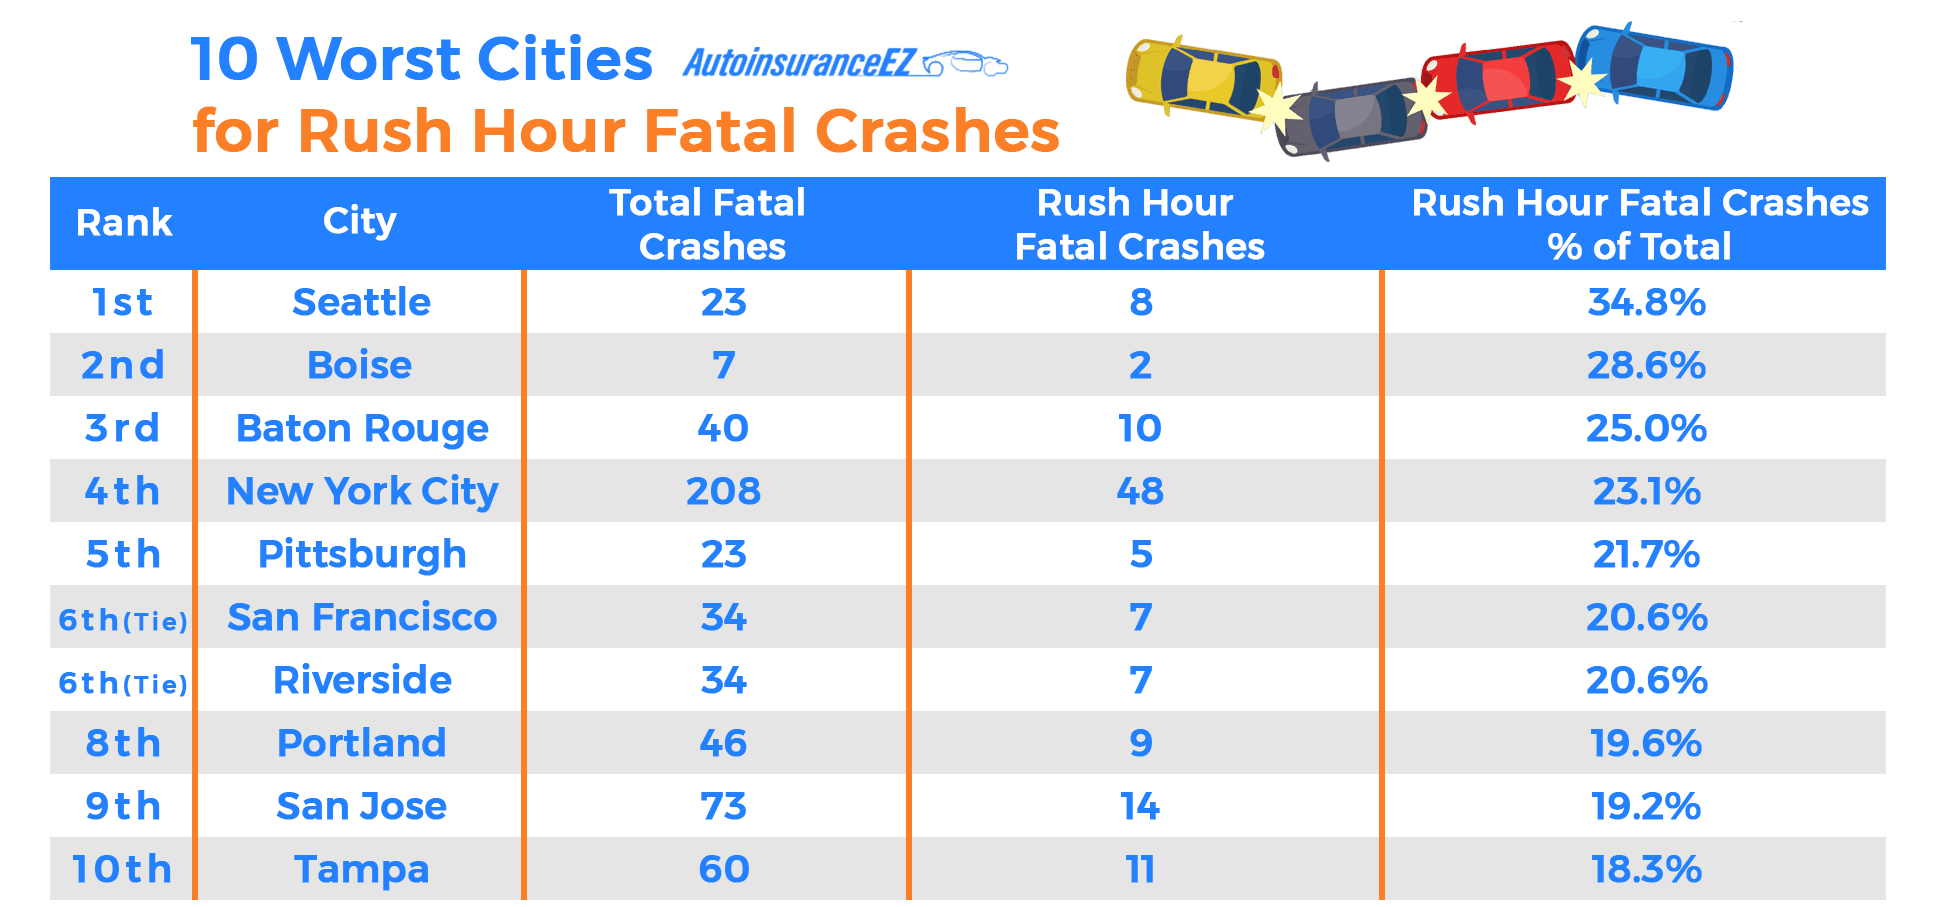 10 Worst Cities for Rush Hour Fatal Crashes